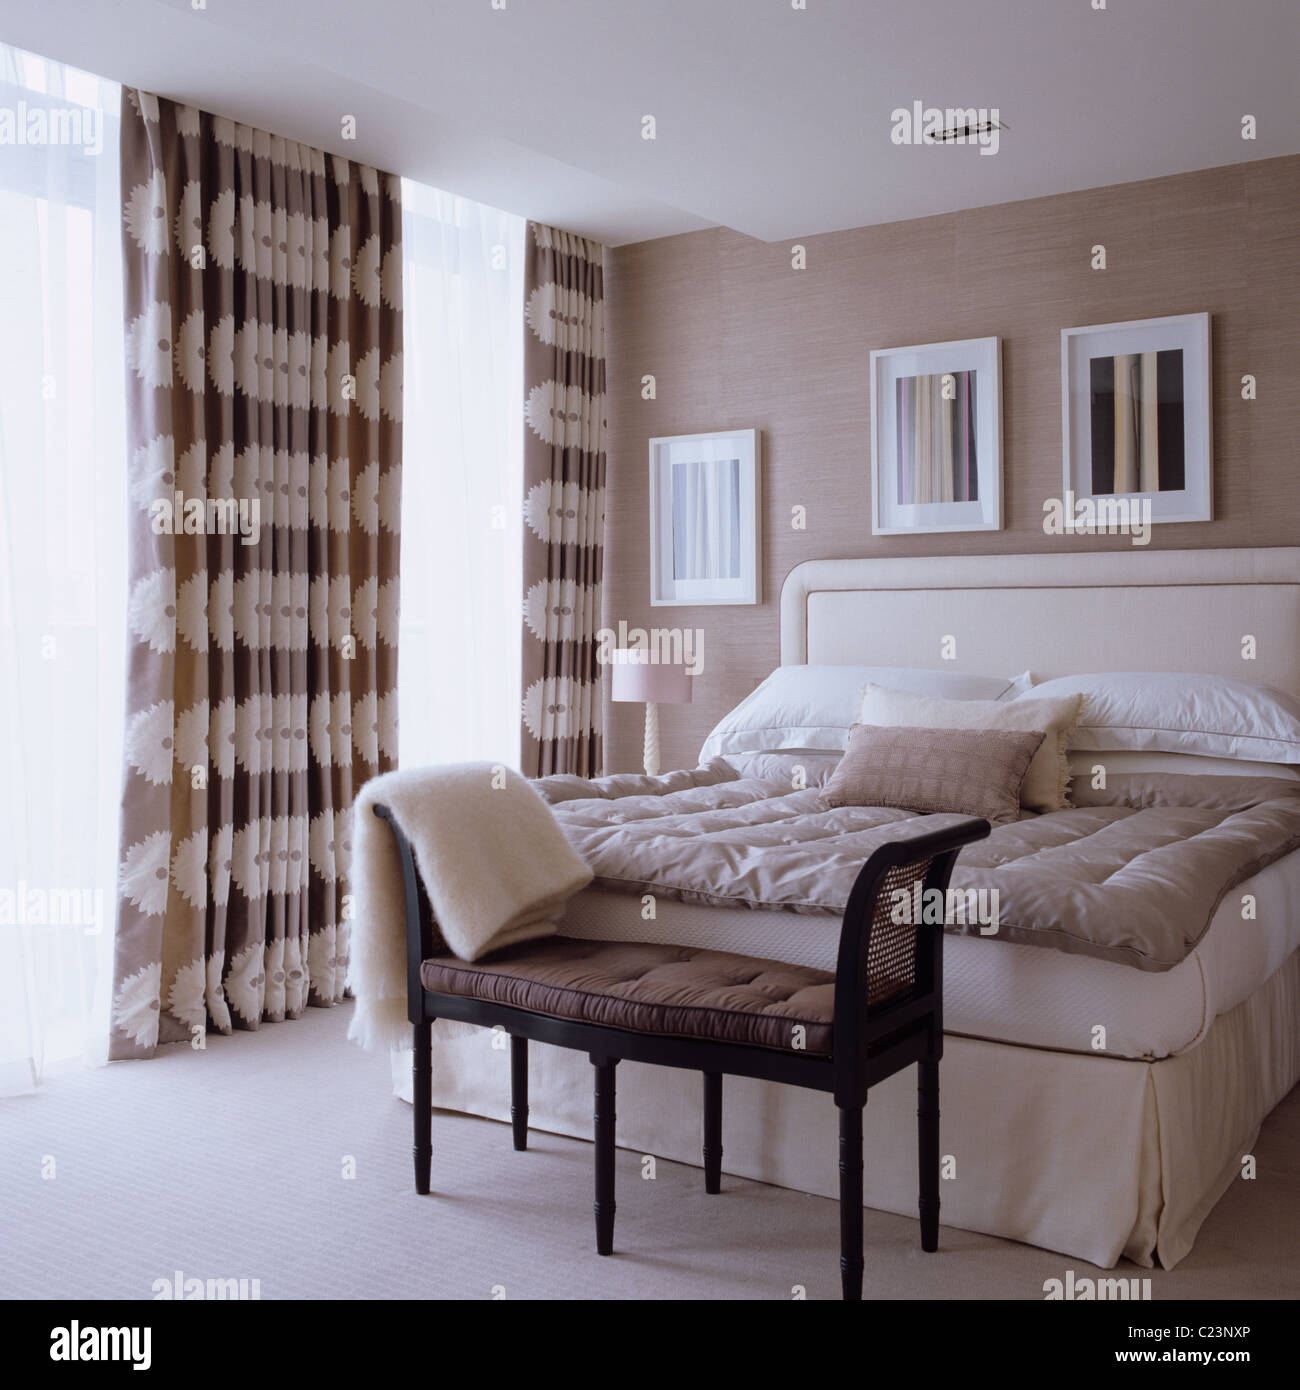 Double bed in bedroom decorated in neutral tones with ...